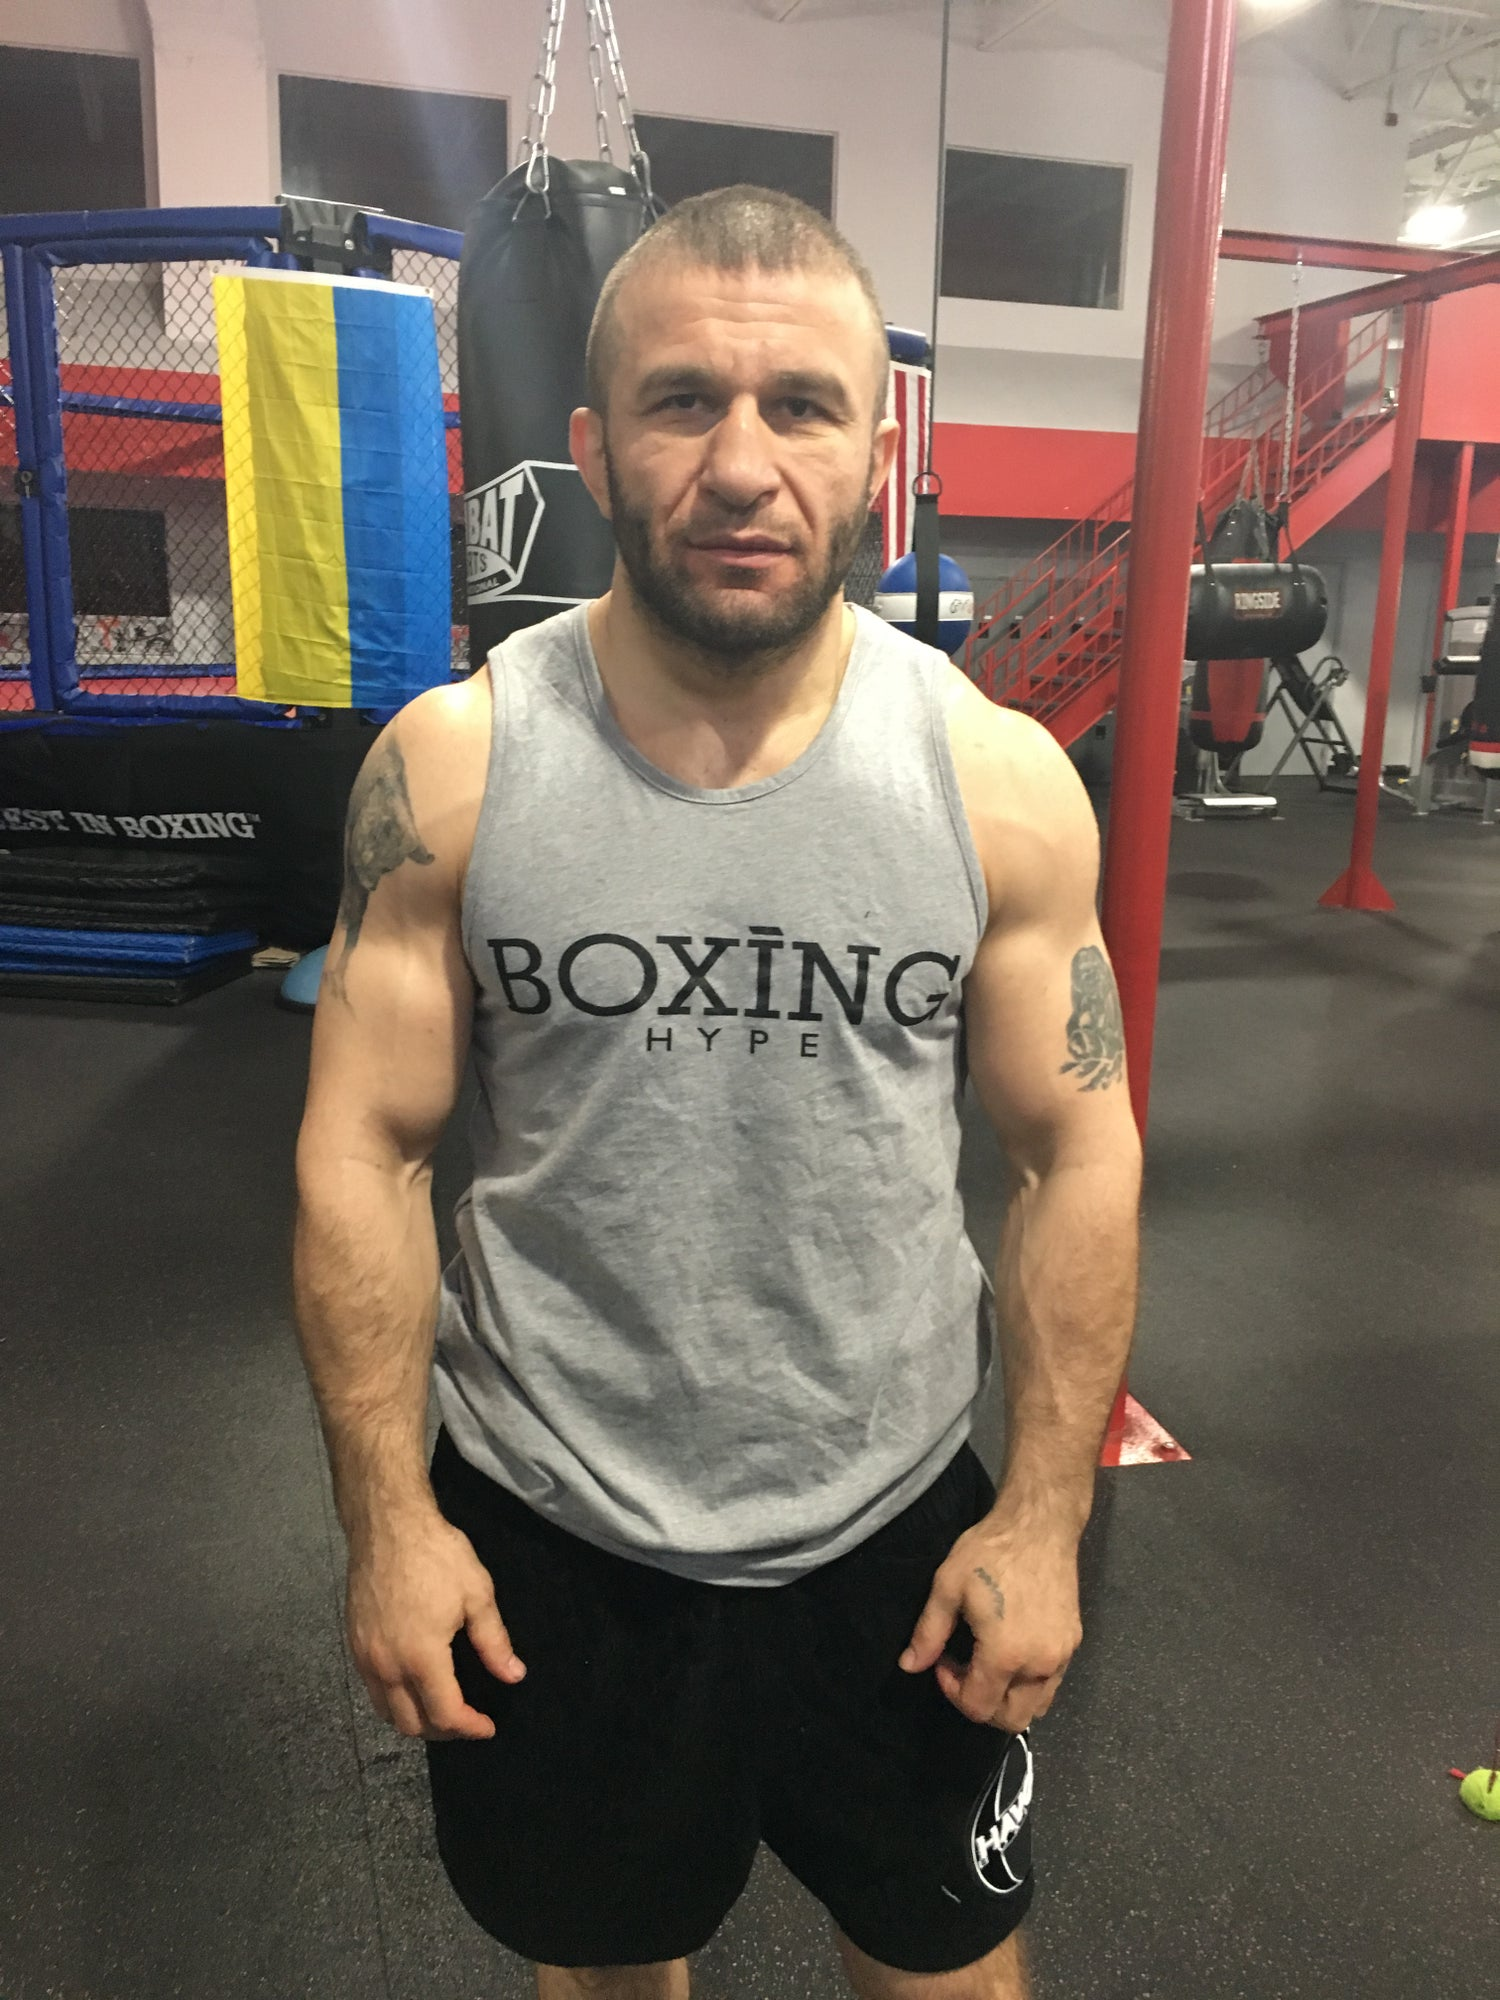 Image of Mens Heather Gray BoxingHype Tanks